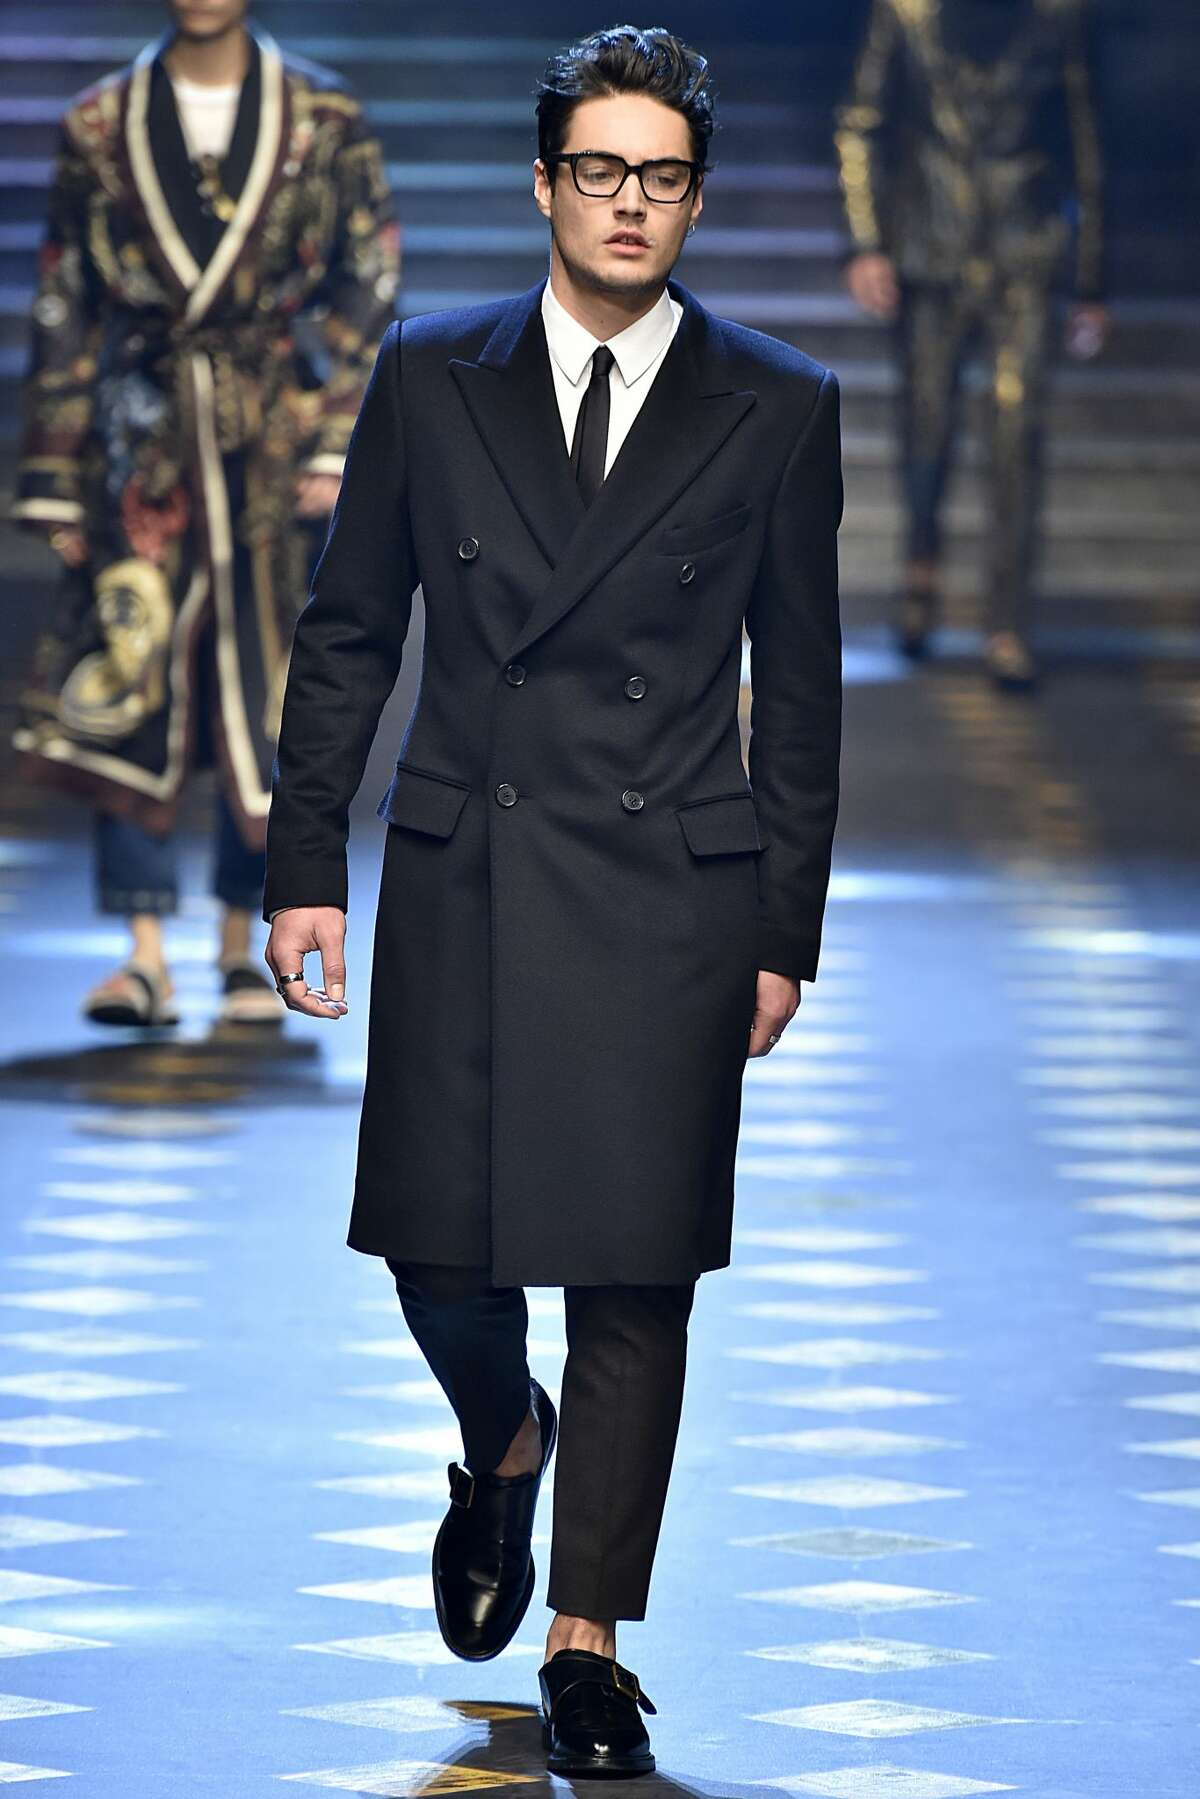 Levi Dylan walks the runway at the Dolce & Gabbana show during Milan Men's Fashion Week Fall/Winter 2017/18 on January 14, 2017 in Milan, Italy.